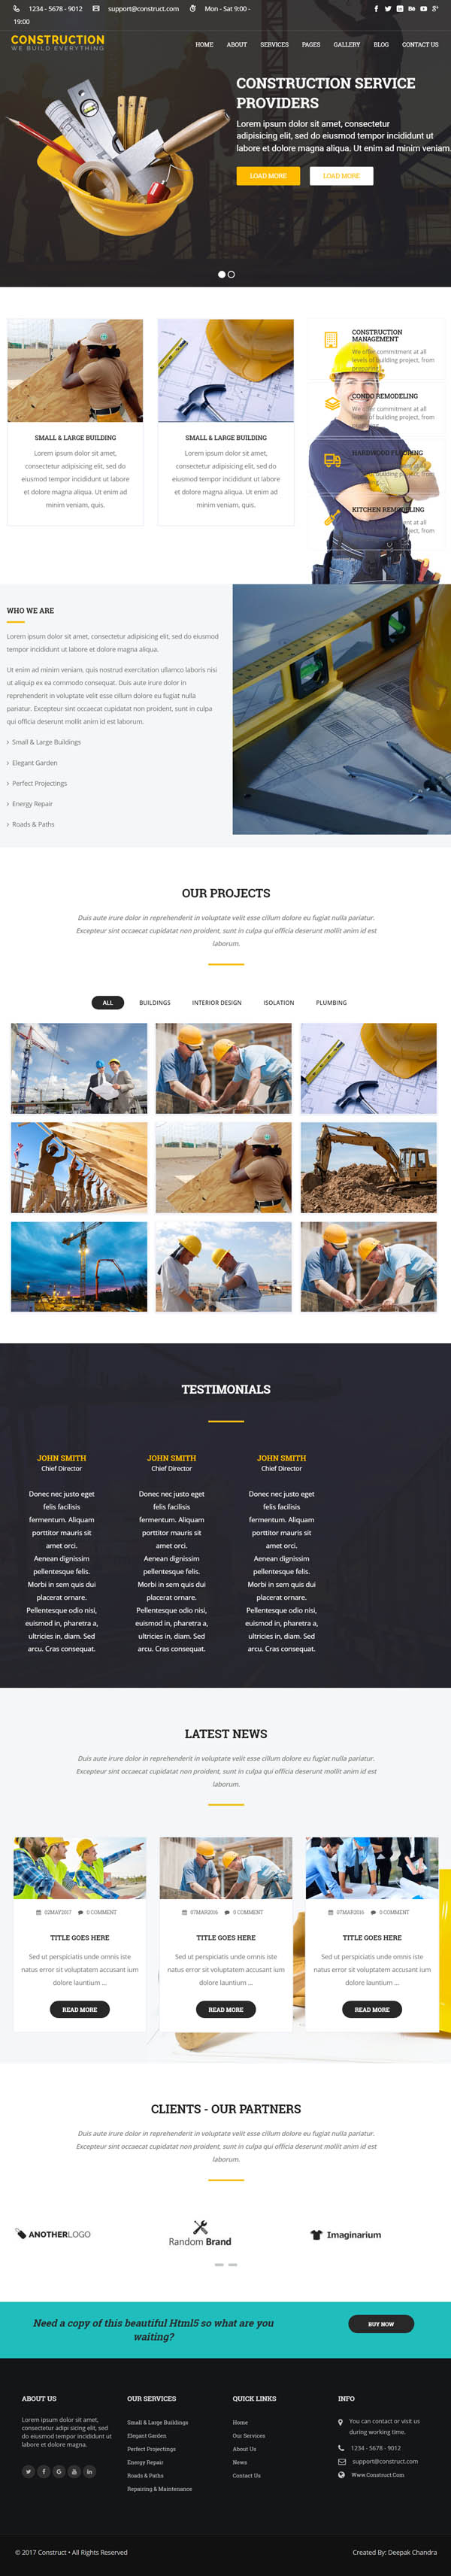 Construction - WordPress Theme for Construction Business